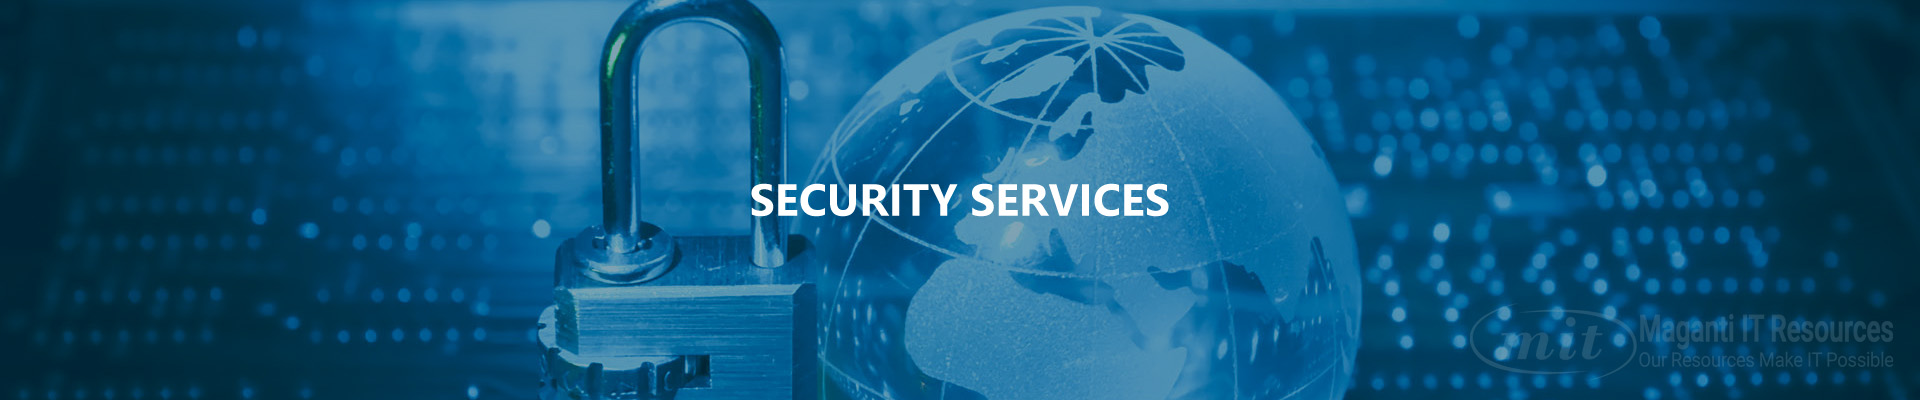 Maganti IT Resources, LLC Security Services